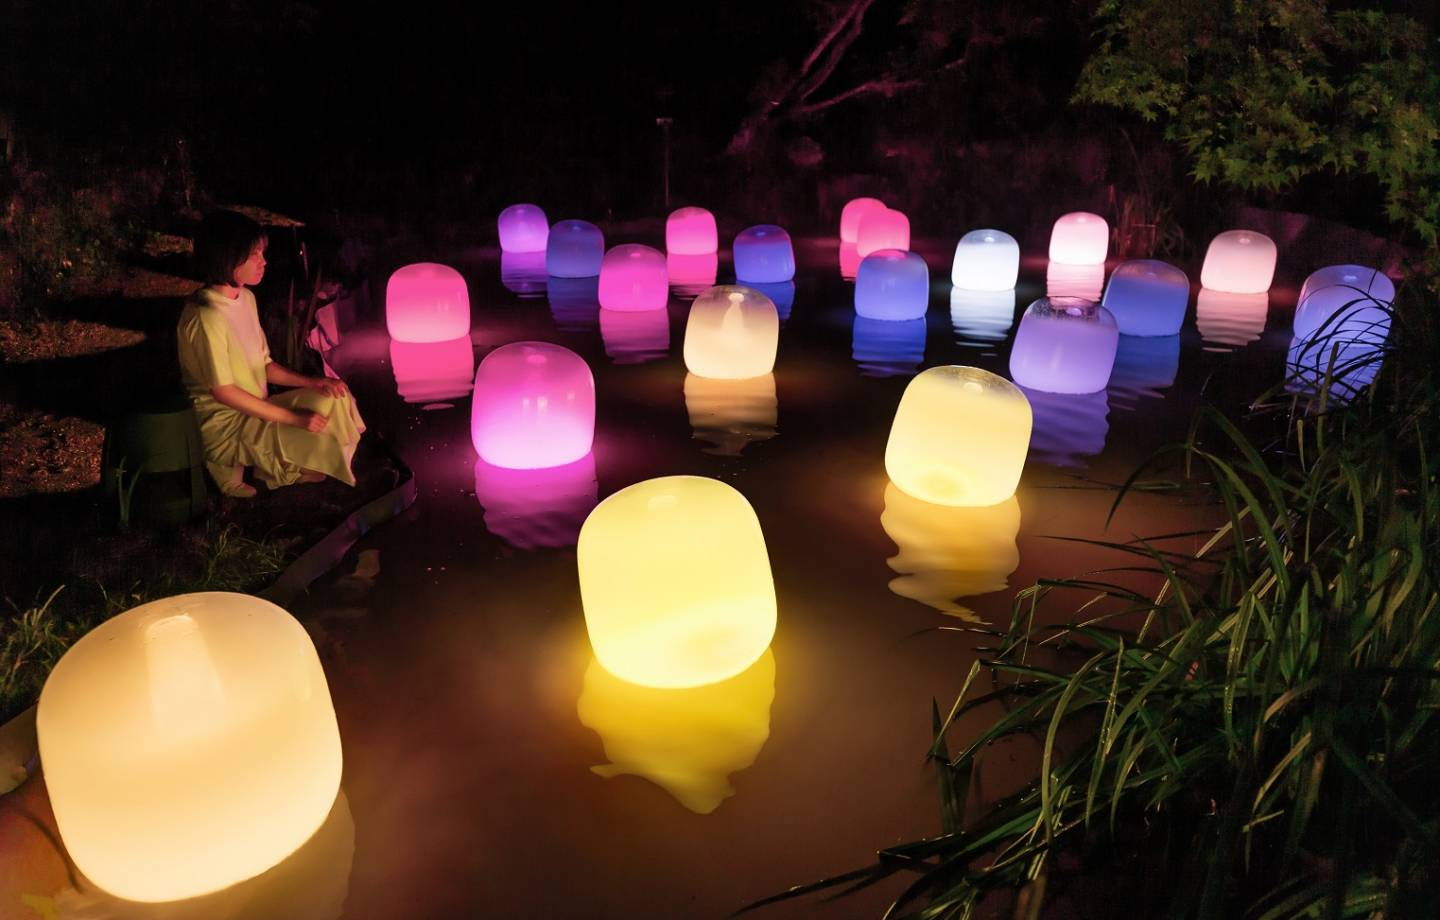 Floating Resonating Lamps - One Stroke, Summer Forest at Night